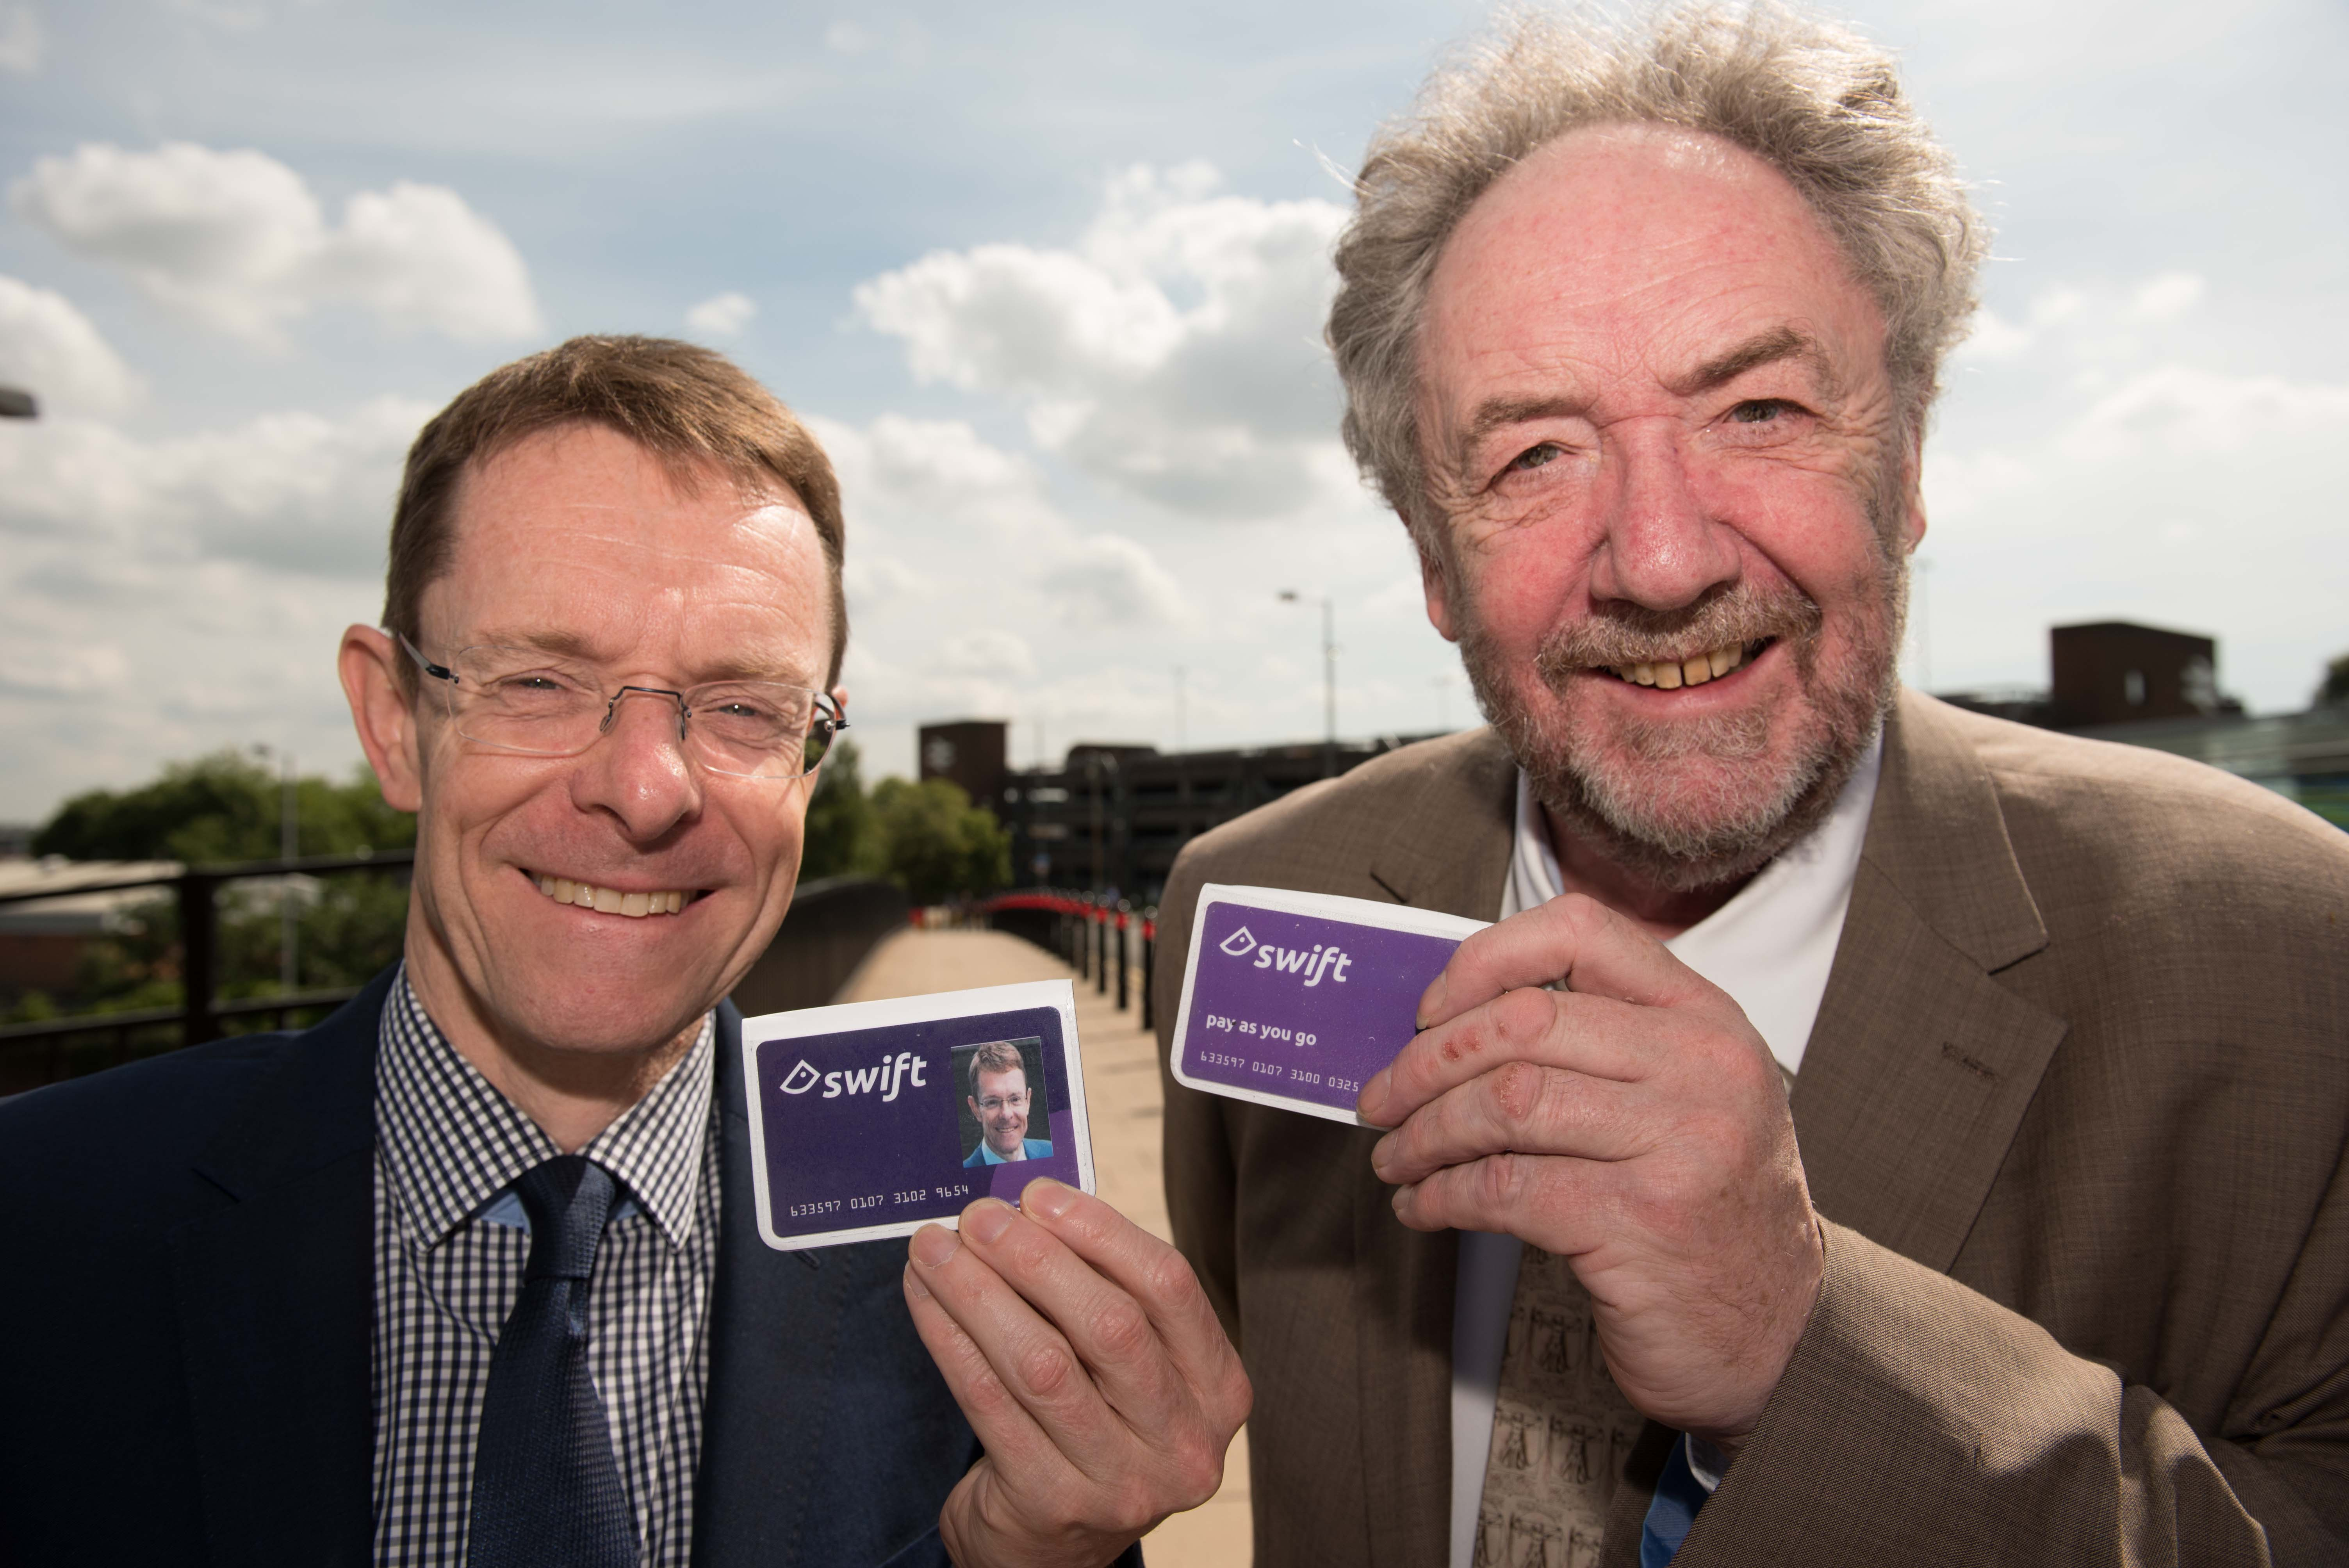 Swift rolled out on bus and rail as smartcard use hits 3m